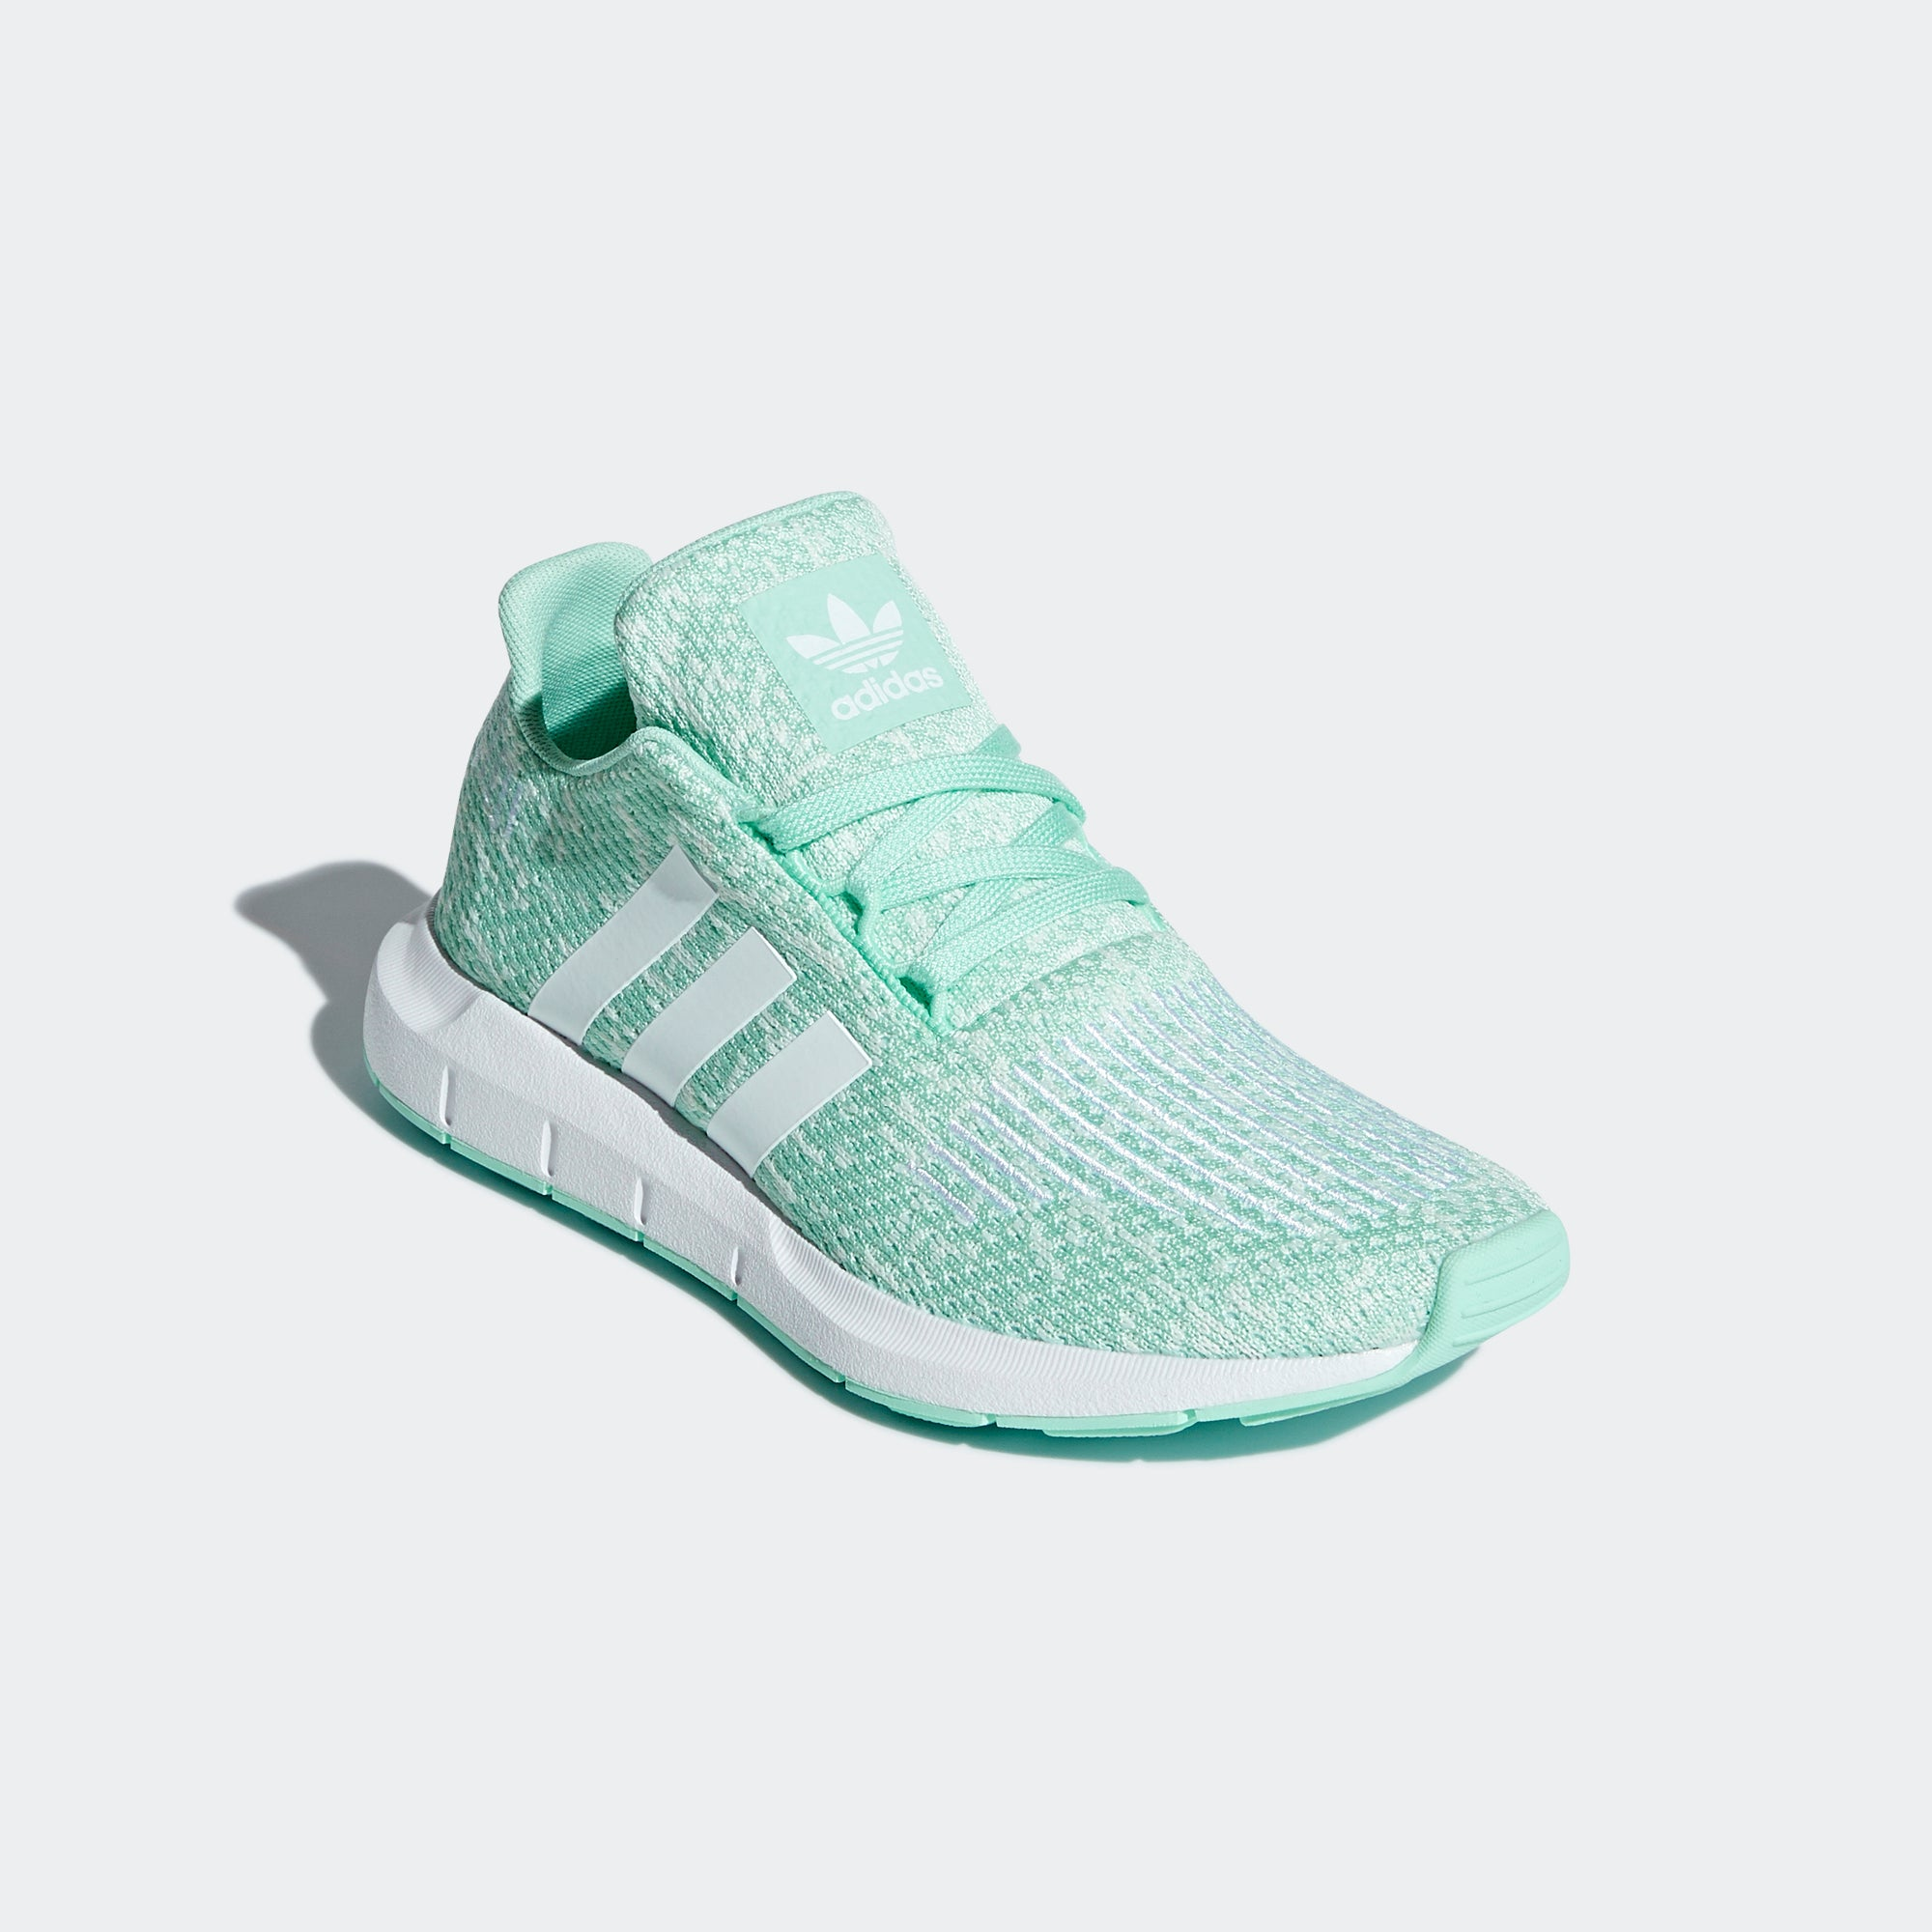 adidas Swift Run Shoes Clear Mint B37119 | Chicago City Sports